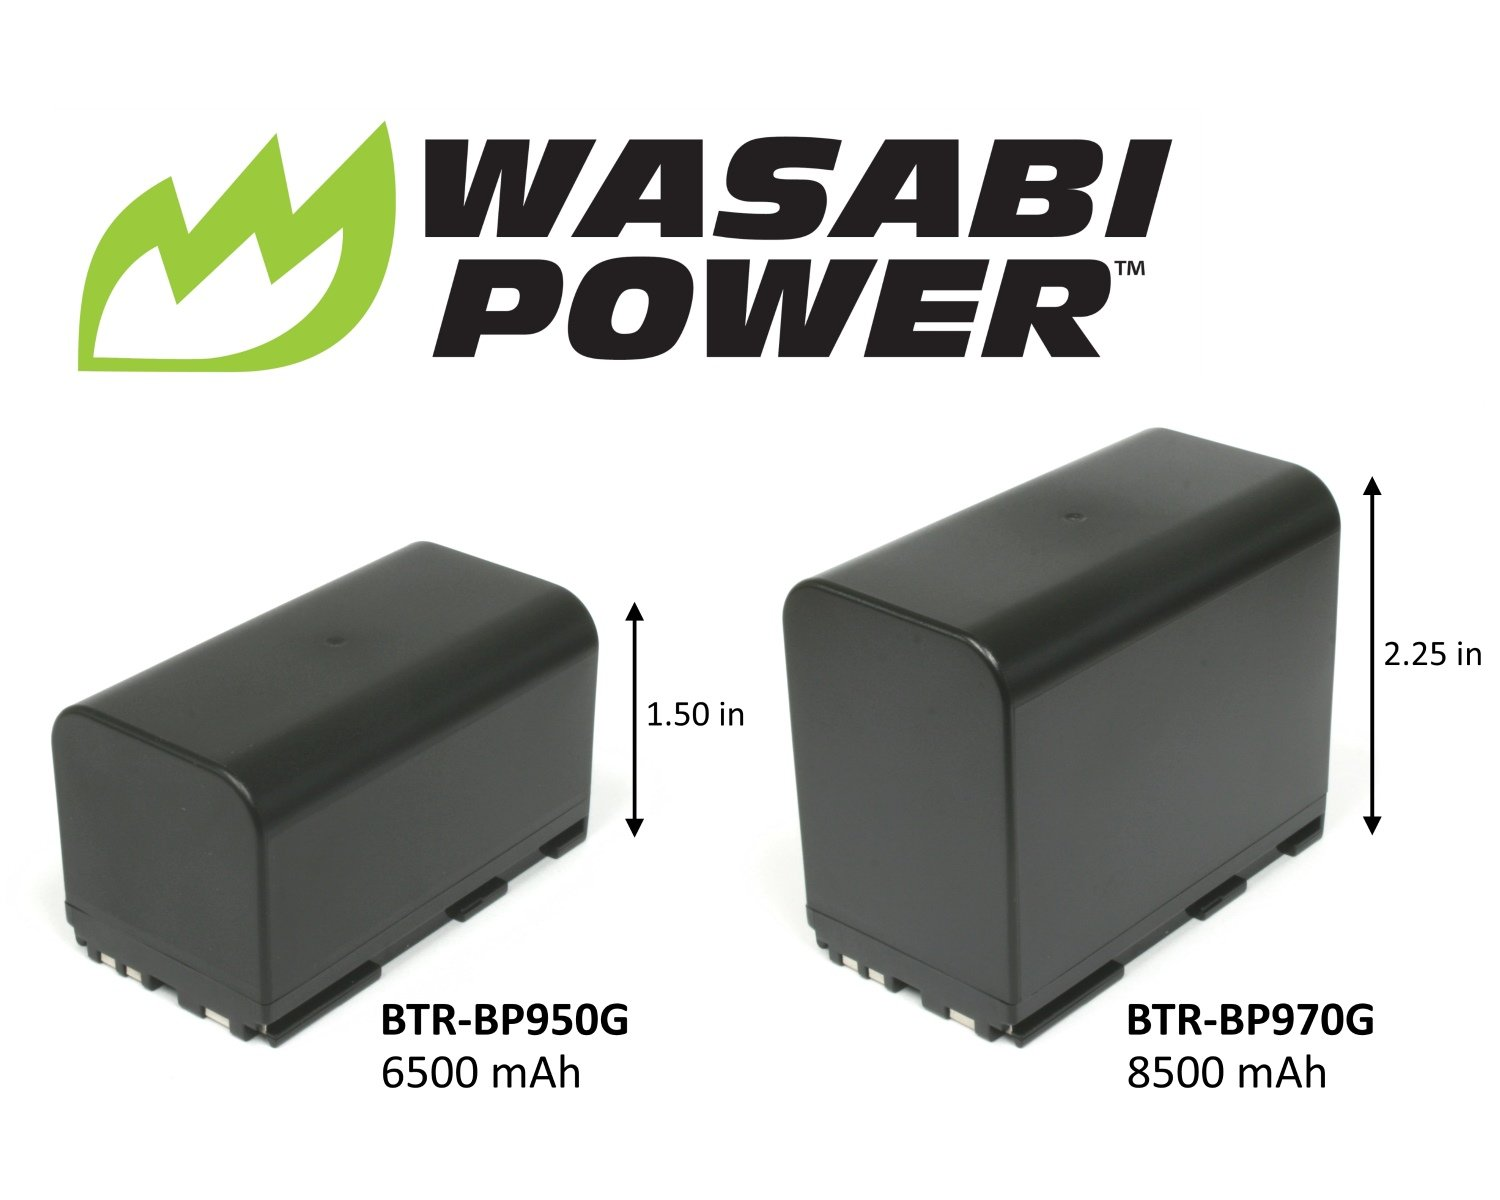 Wasabi Power Battery for Canon BP-970G, BP-975 and Canon EOS C100, EOS C100 Mark II, EOS C300, EOS C300 PL, EOS C500, EOS C500 PL, GL2, XF100, XF105, XF200, XF205, XF300, XF305, XH A1S, XH G1S, XL H1A, XL H1S, XL2 (8500mAh) by Wasabi Power